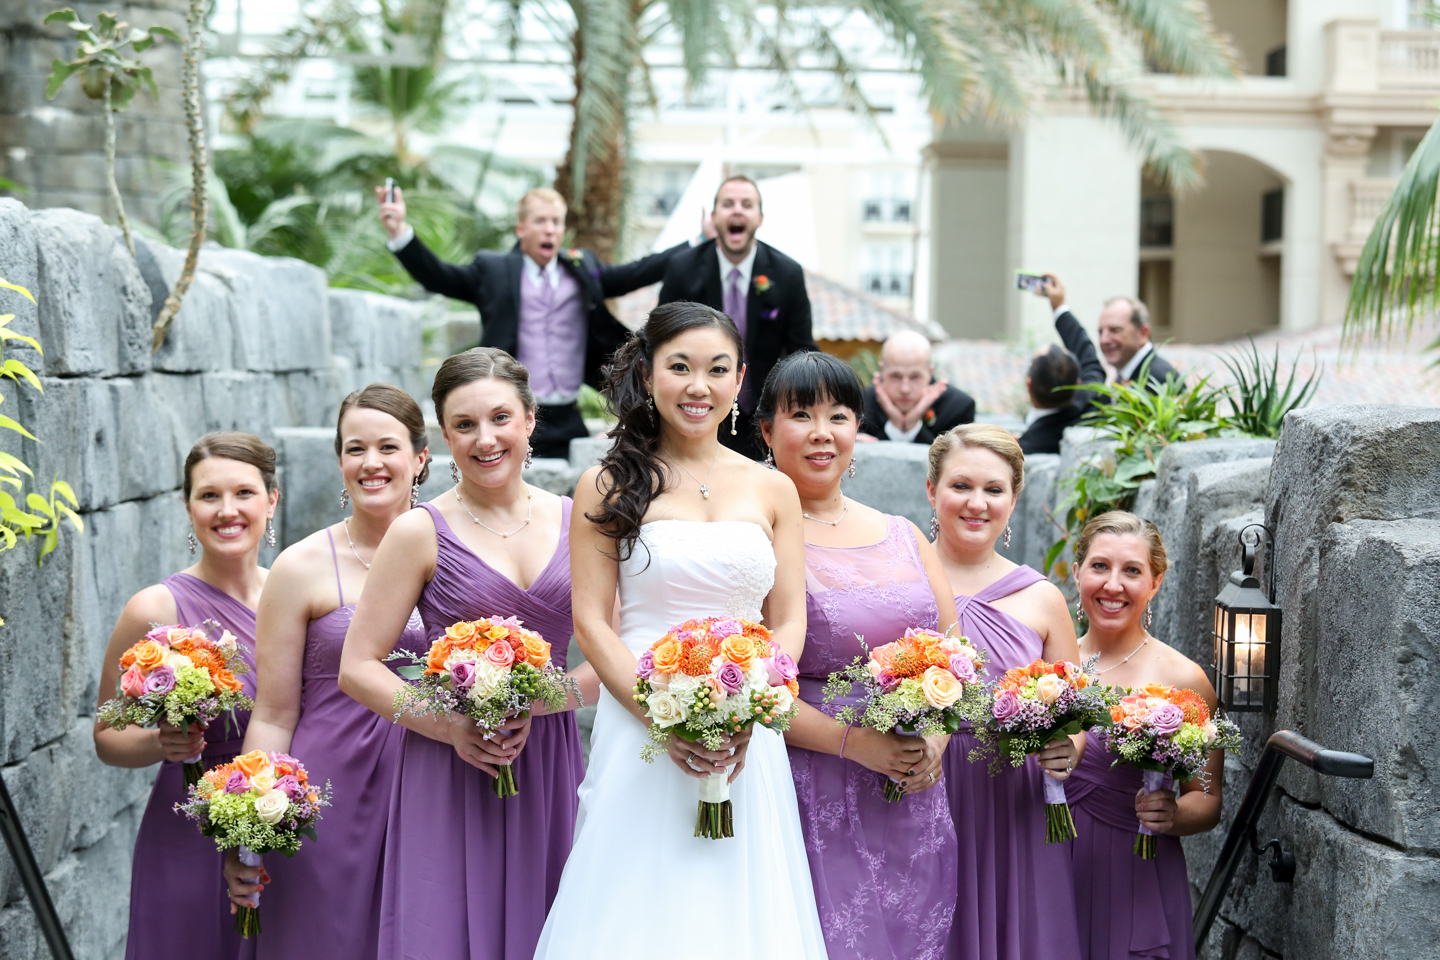 www.livehappystudio.com-wedding-photographer-orlando-fun-candid-portrait-silly-photobomb-bridesmaids-6.jpg